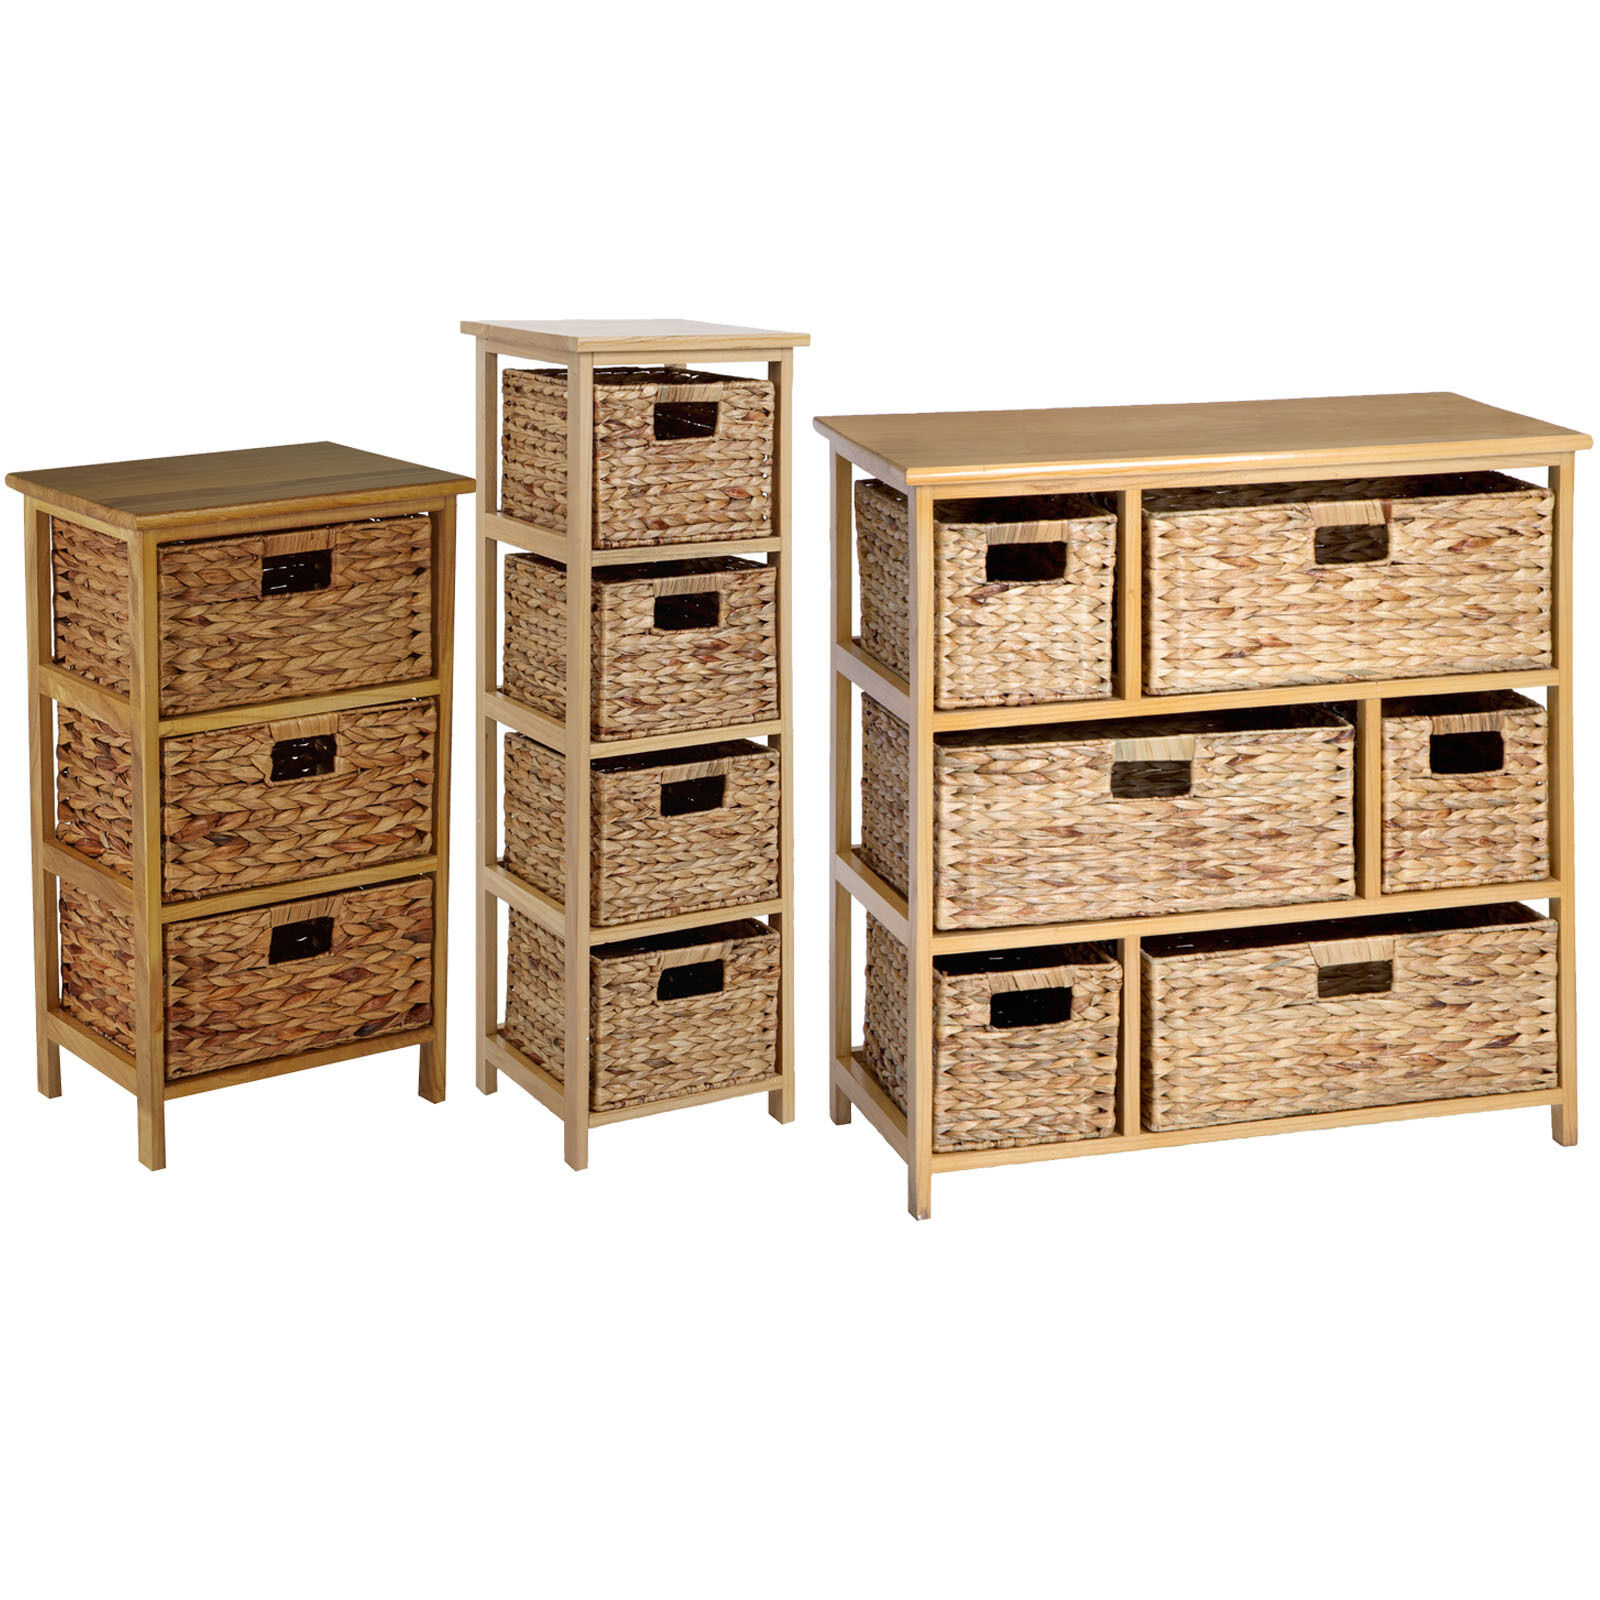 Wooden Storage Unit With Wicker Basket Drawers Large Chest Of Bathroom Shelving 1 of 1FREE Shipping ...  sc 1 st  PicClick UK & WOODEN STORAGE UNIT With Wicker Basket Drawers Large Chest Of ...